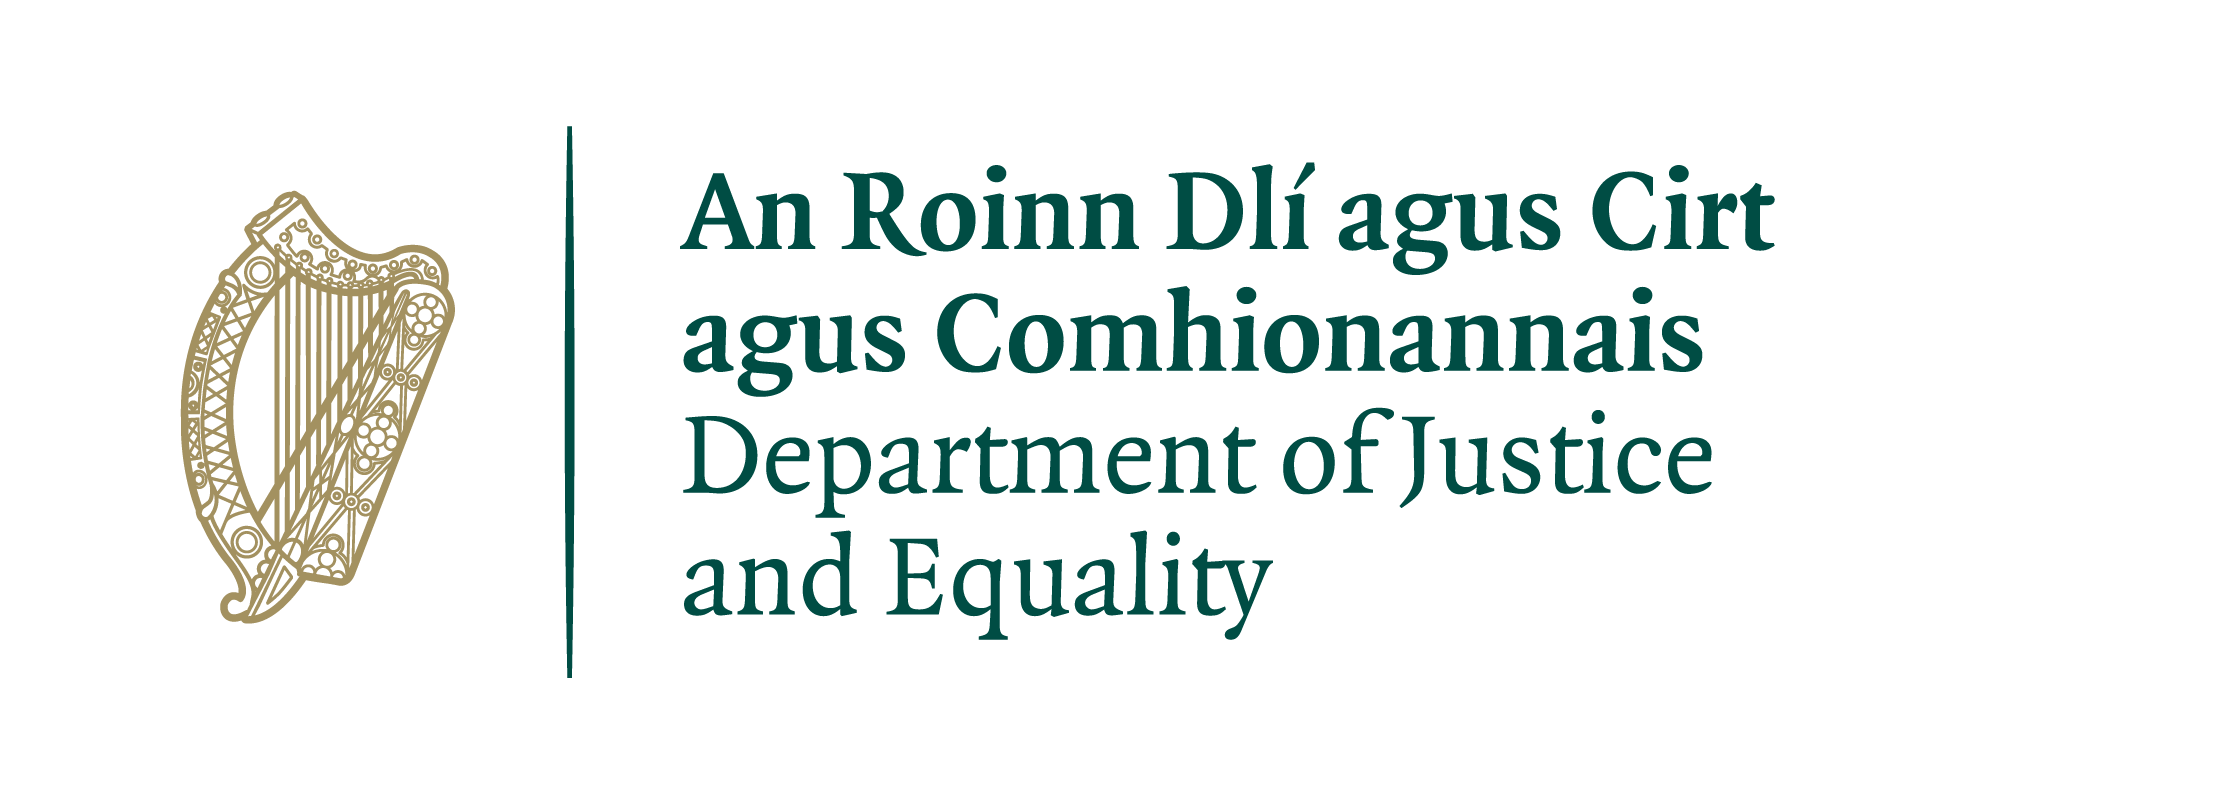 Irish_Department_of_Justice_and_Equality_logo